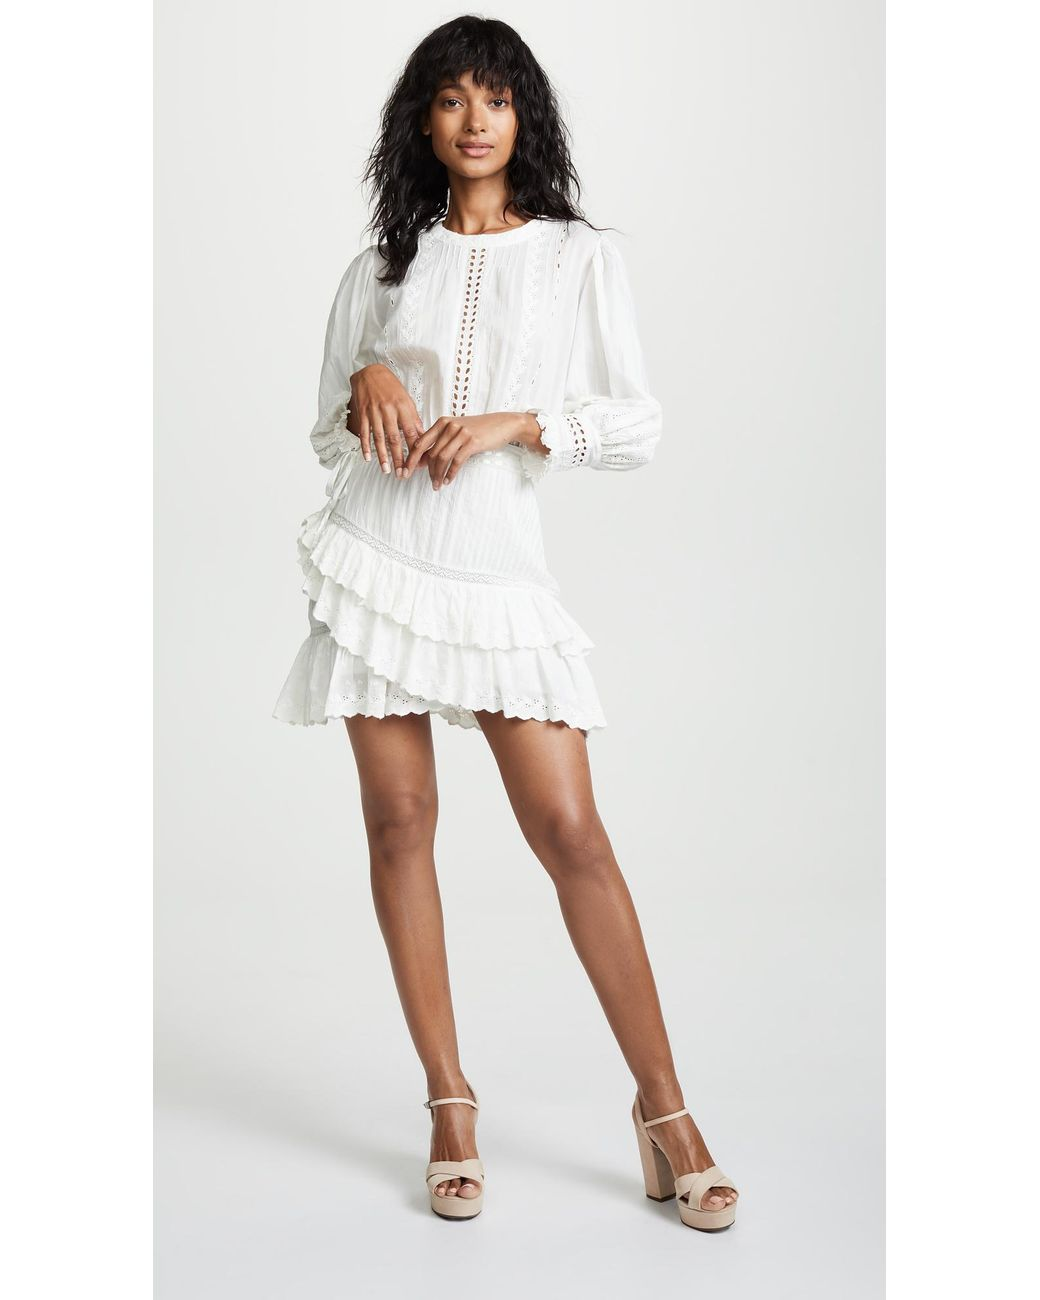 bafb7646699b3 LoveShackFancy Lorelei Dress in White - Lyst